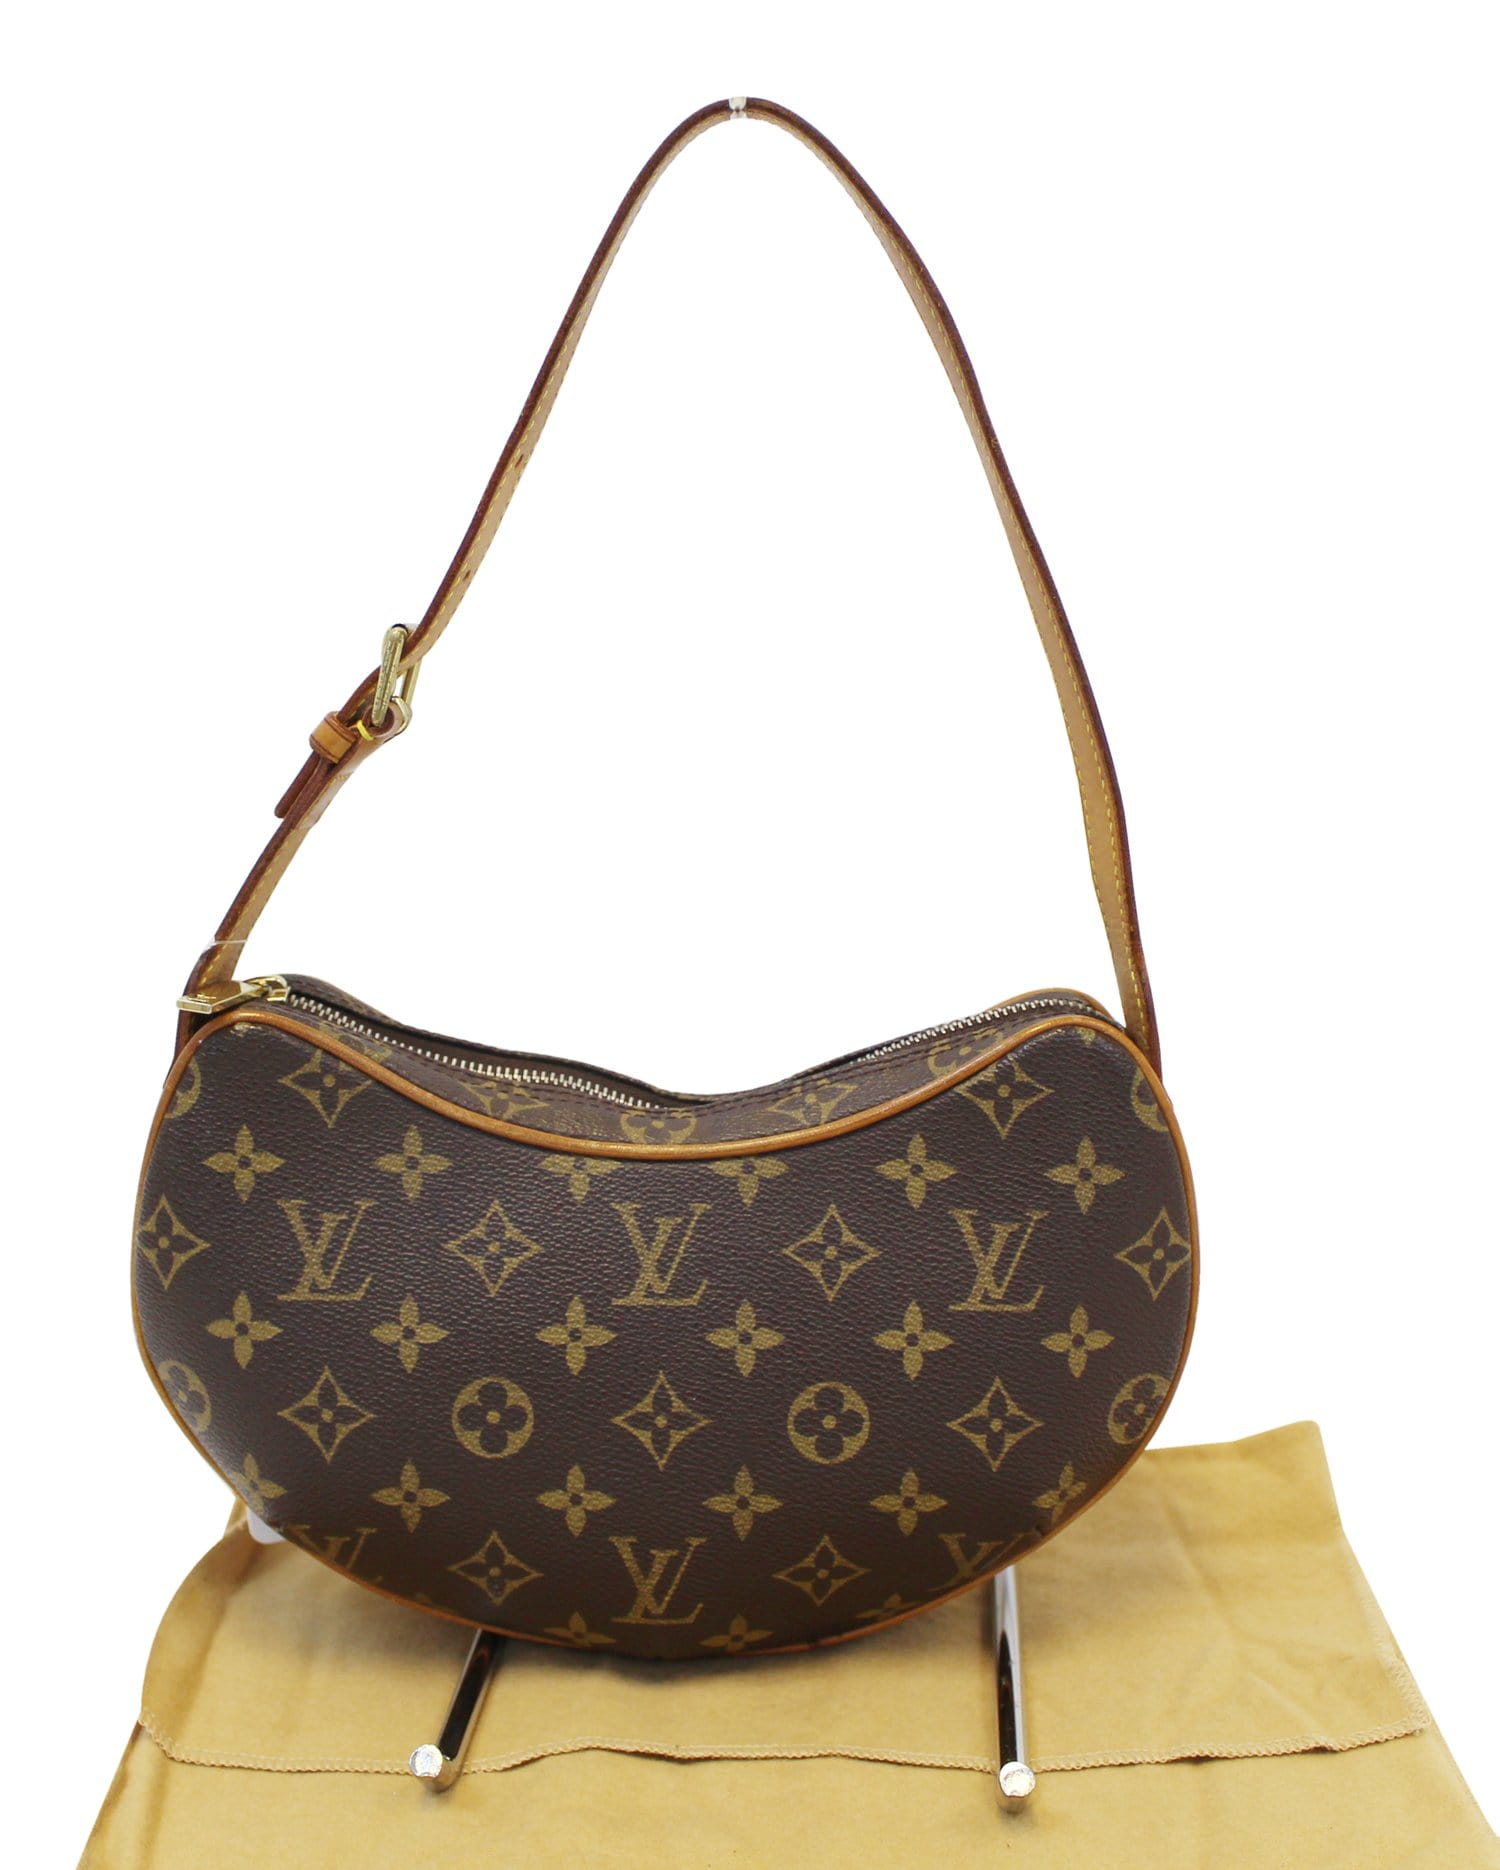 92a2e3c685fa LOUIS VUITTON Monogram Canvas Croissant PM Bag - Final Call